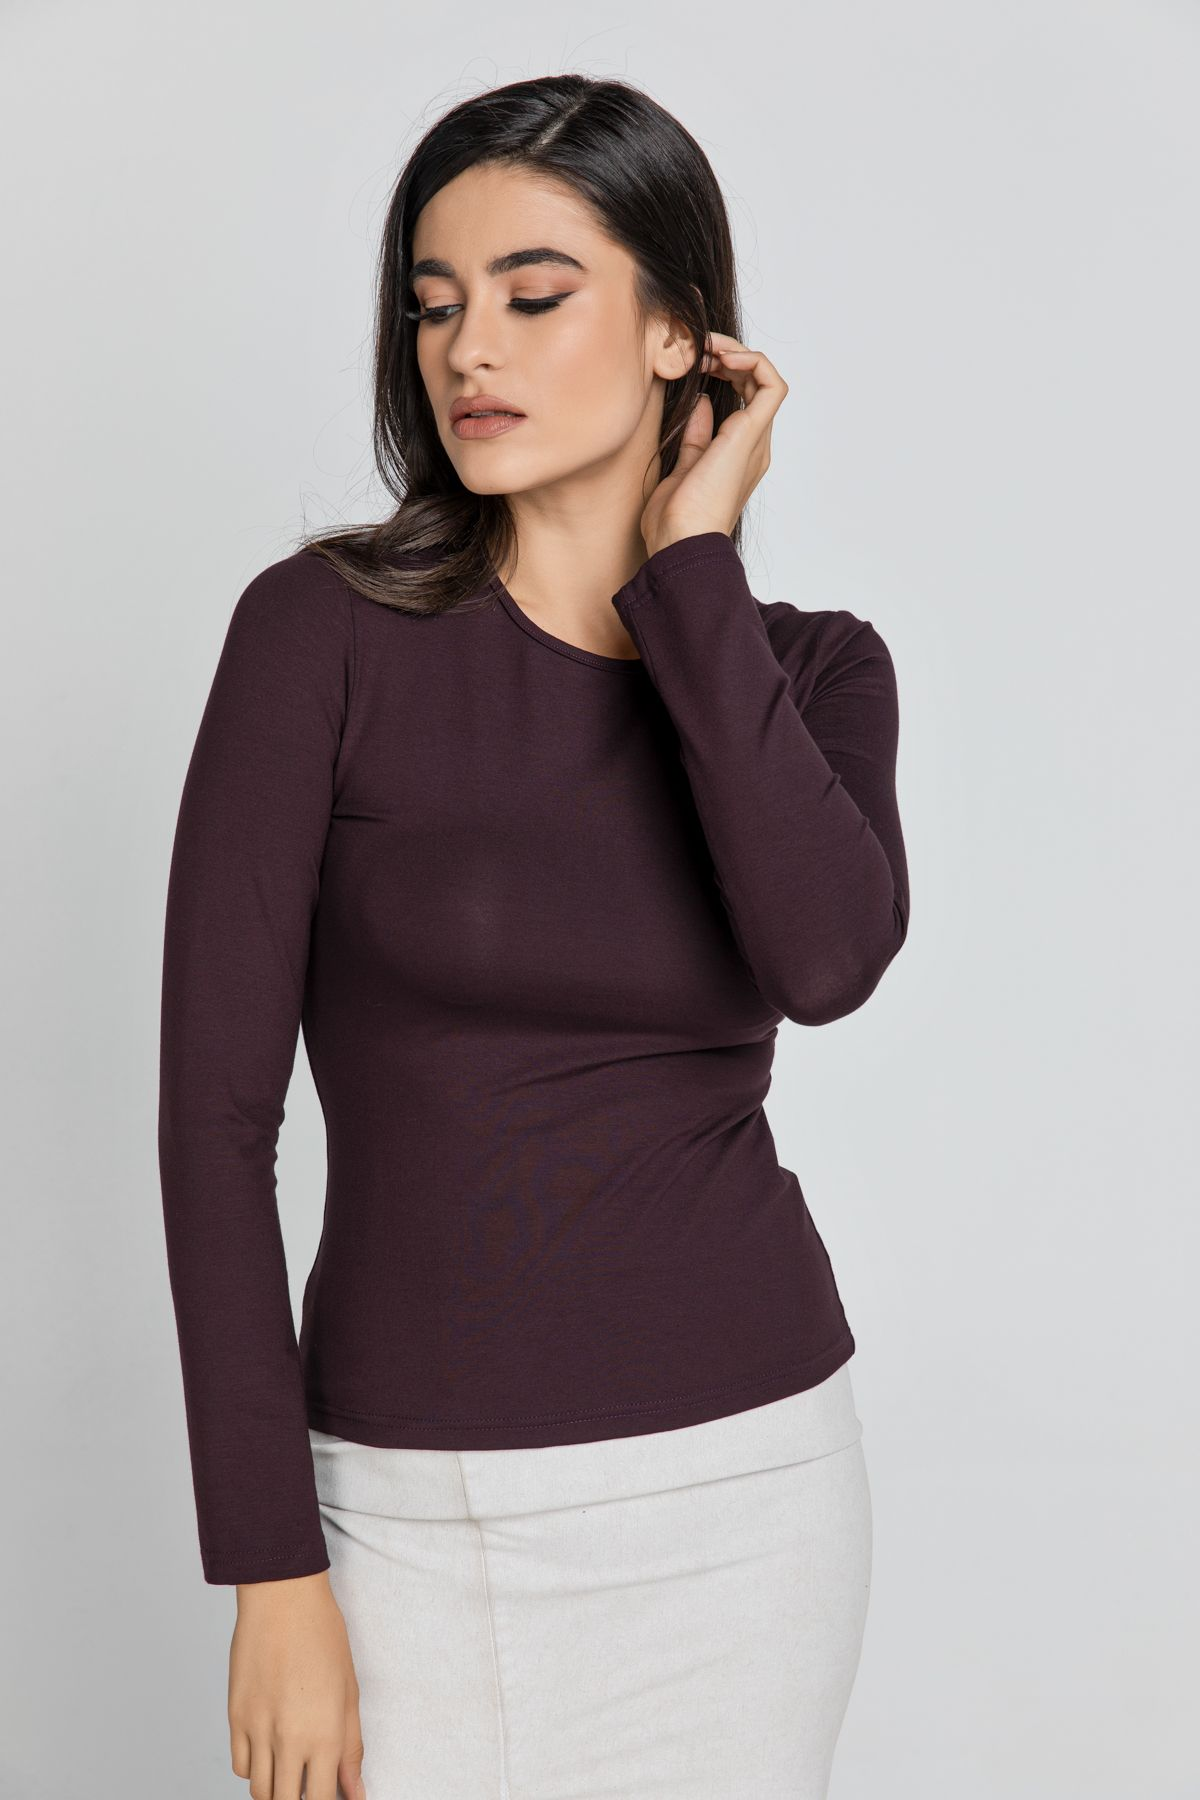 Maroon Jersey Top By Conquista Fashion